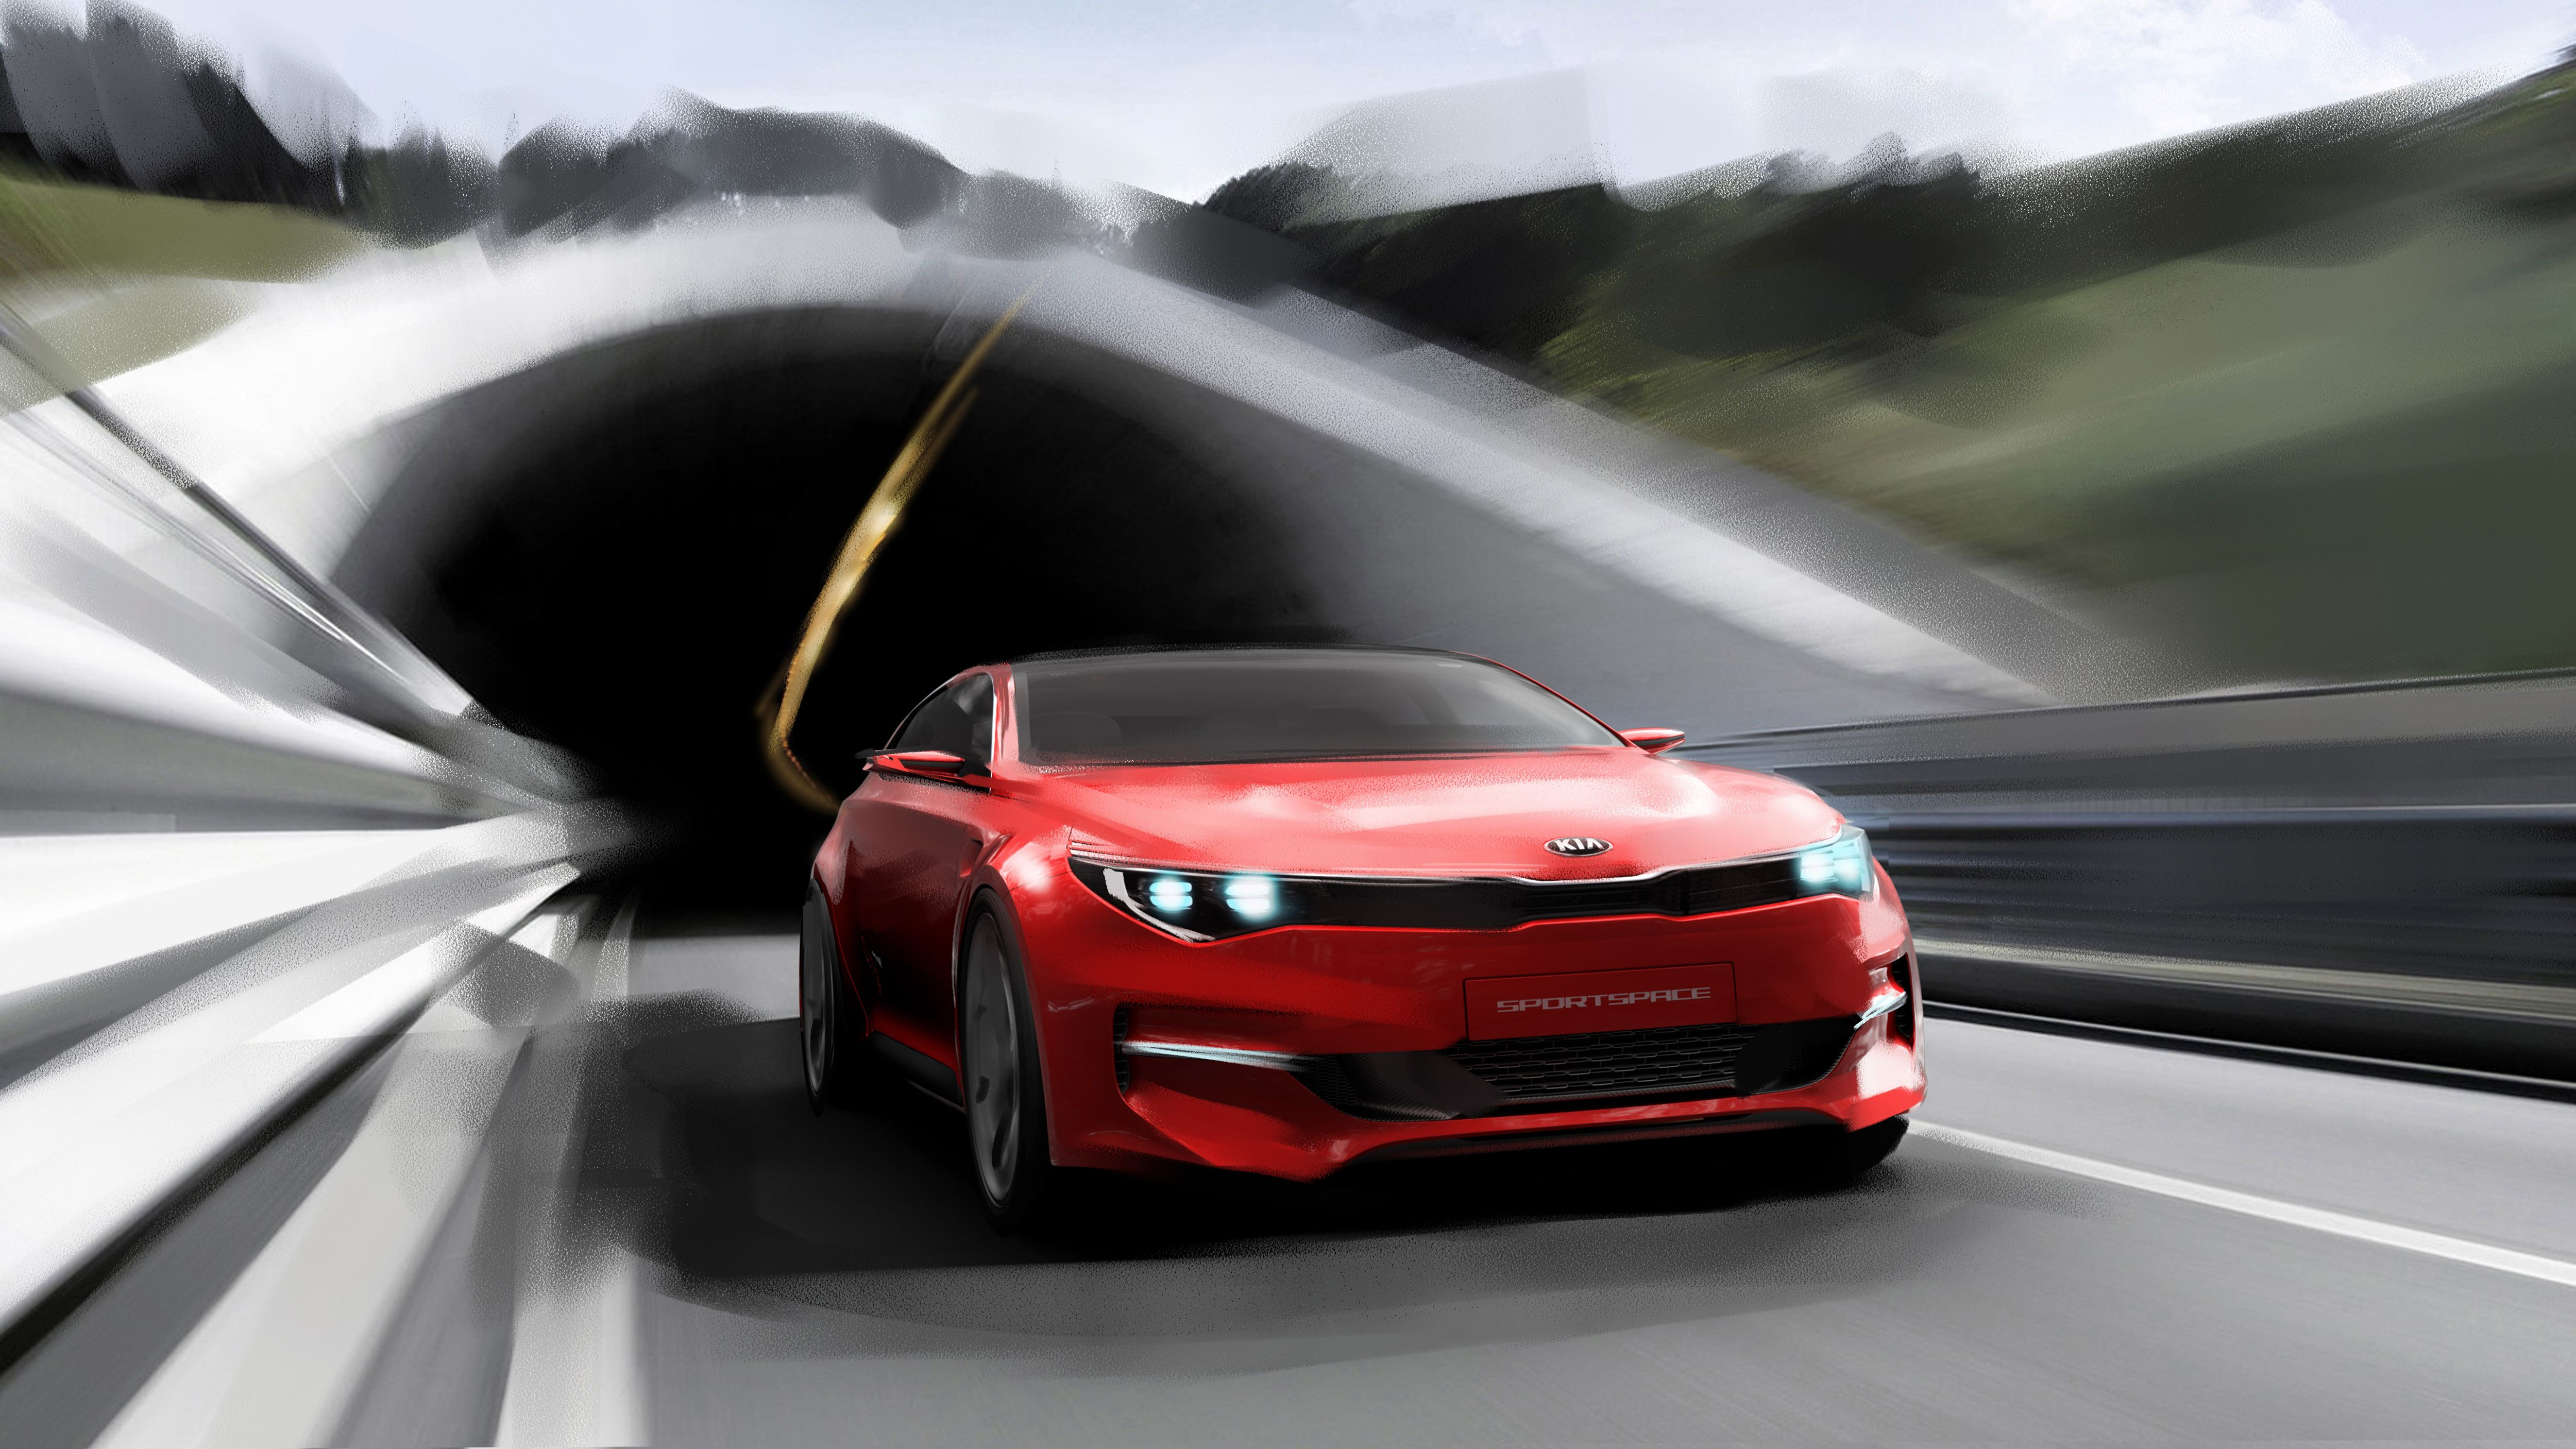 kia news the autos small front enters crossover sketch quarters canada stonic en motor three trend fray